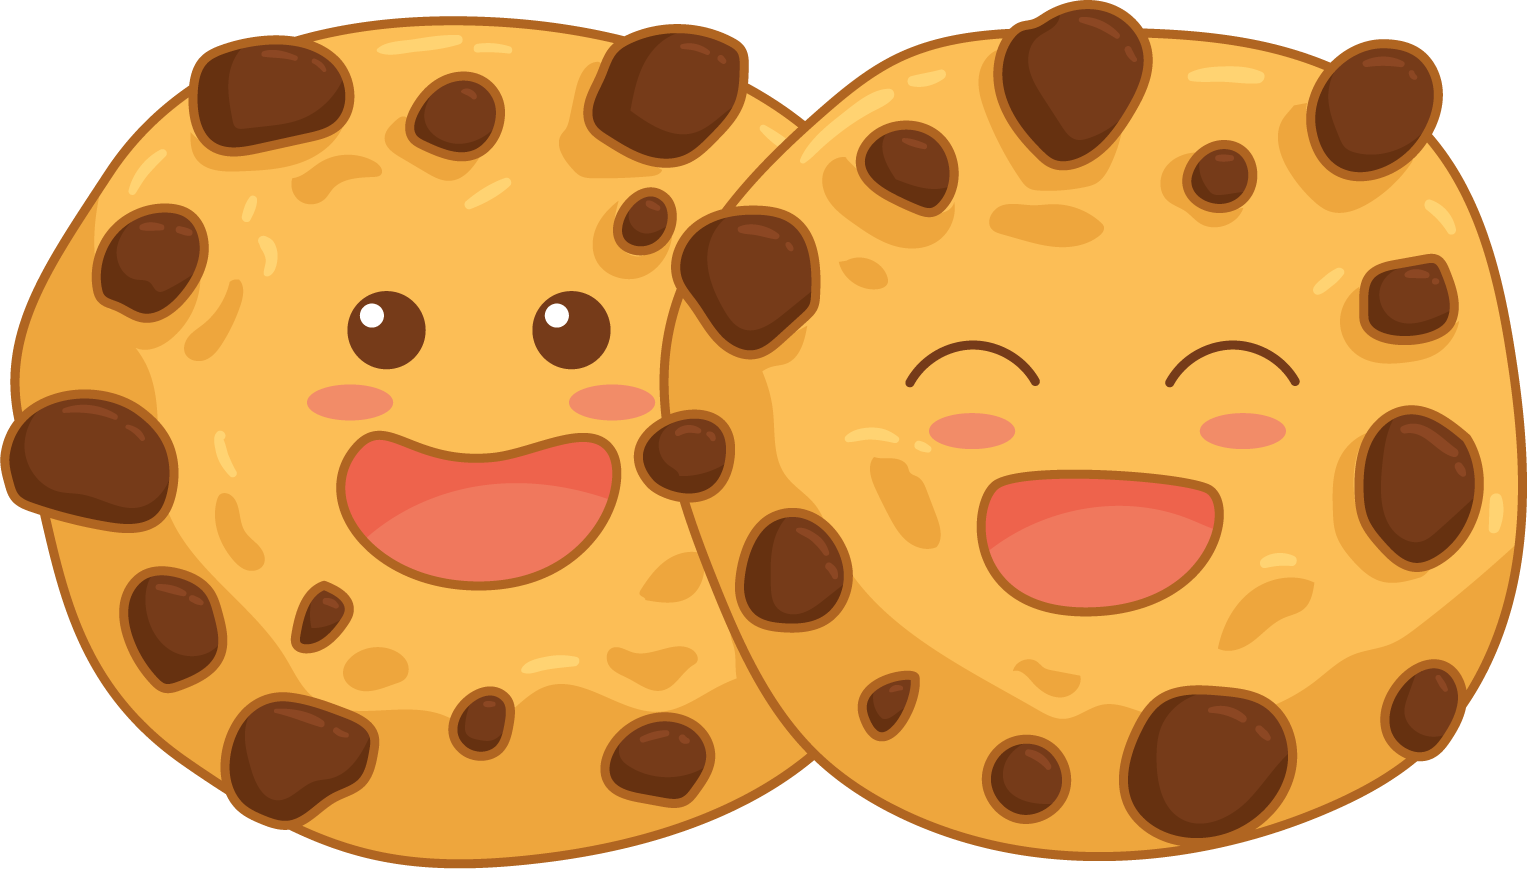 Cookie cartoon png. Transparent free images only